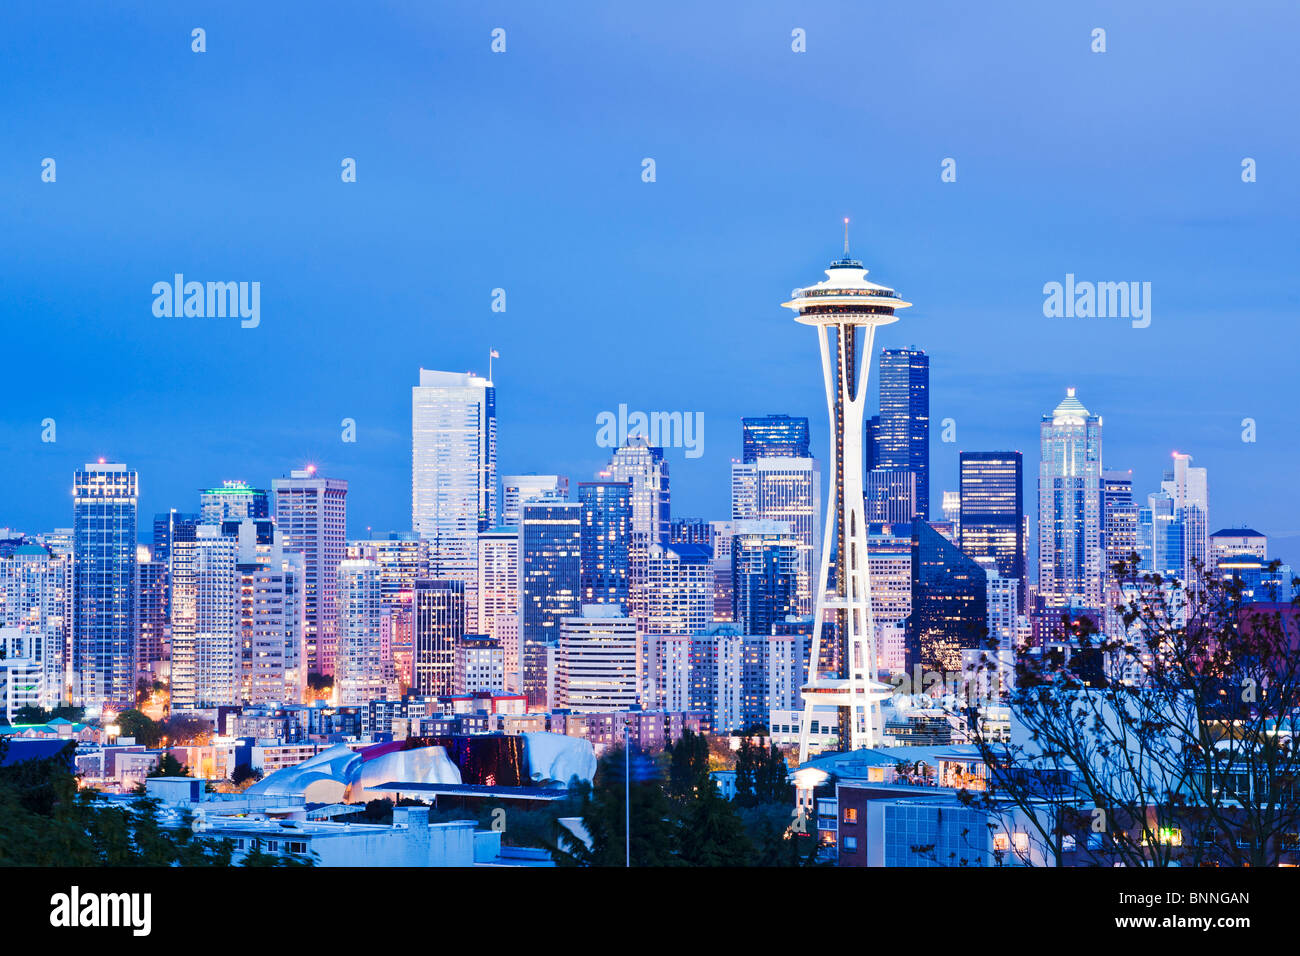 Space needle, Seattle, Washington - Stock Image